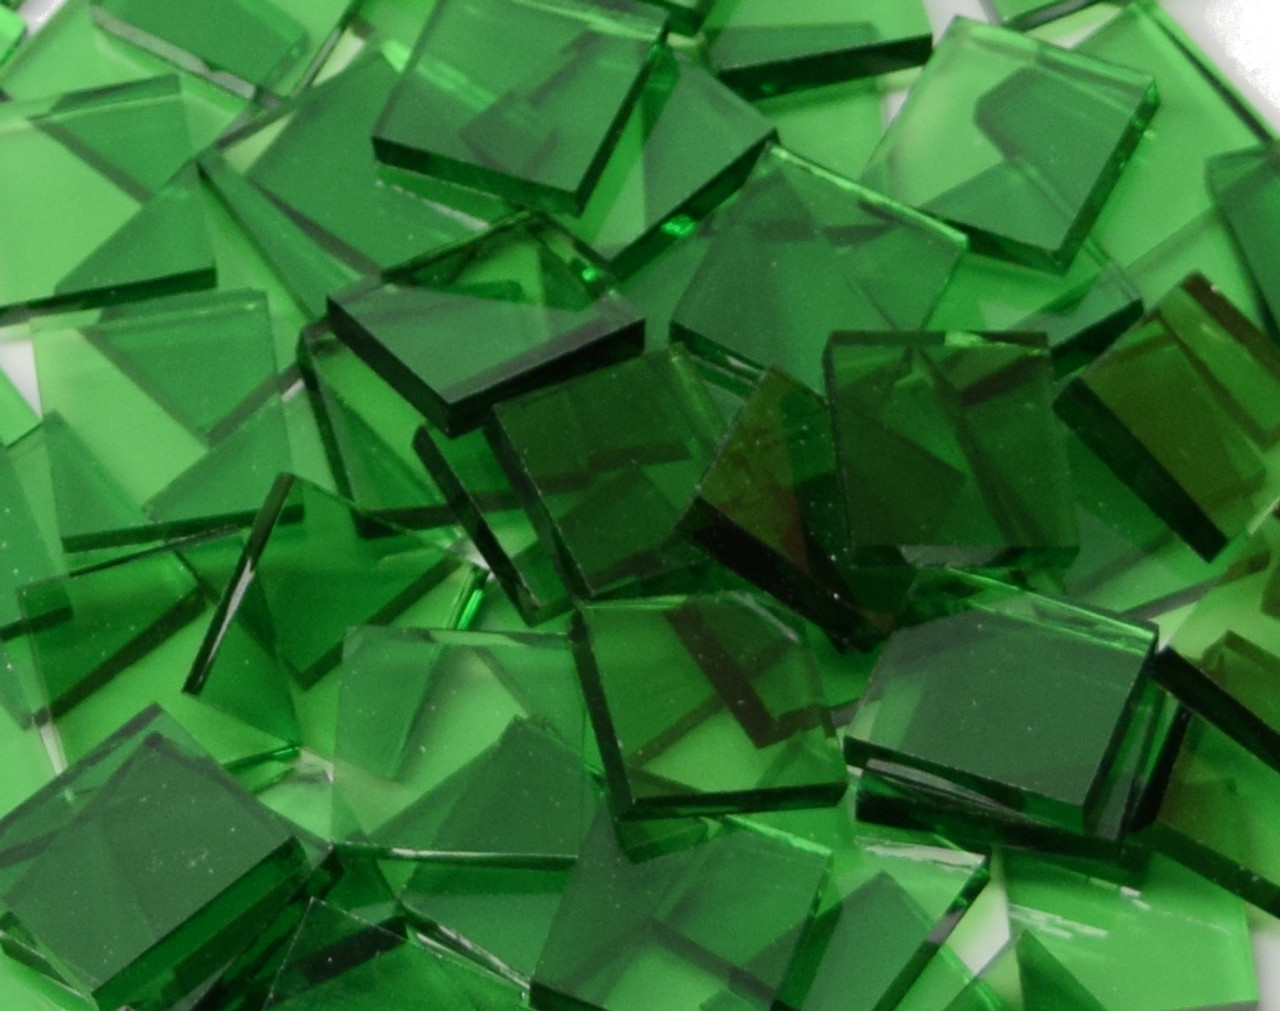 Leafy Green Artique Stained Glass Mosaic Tiles